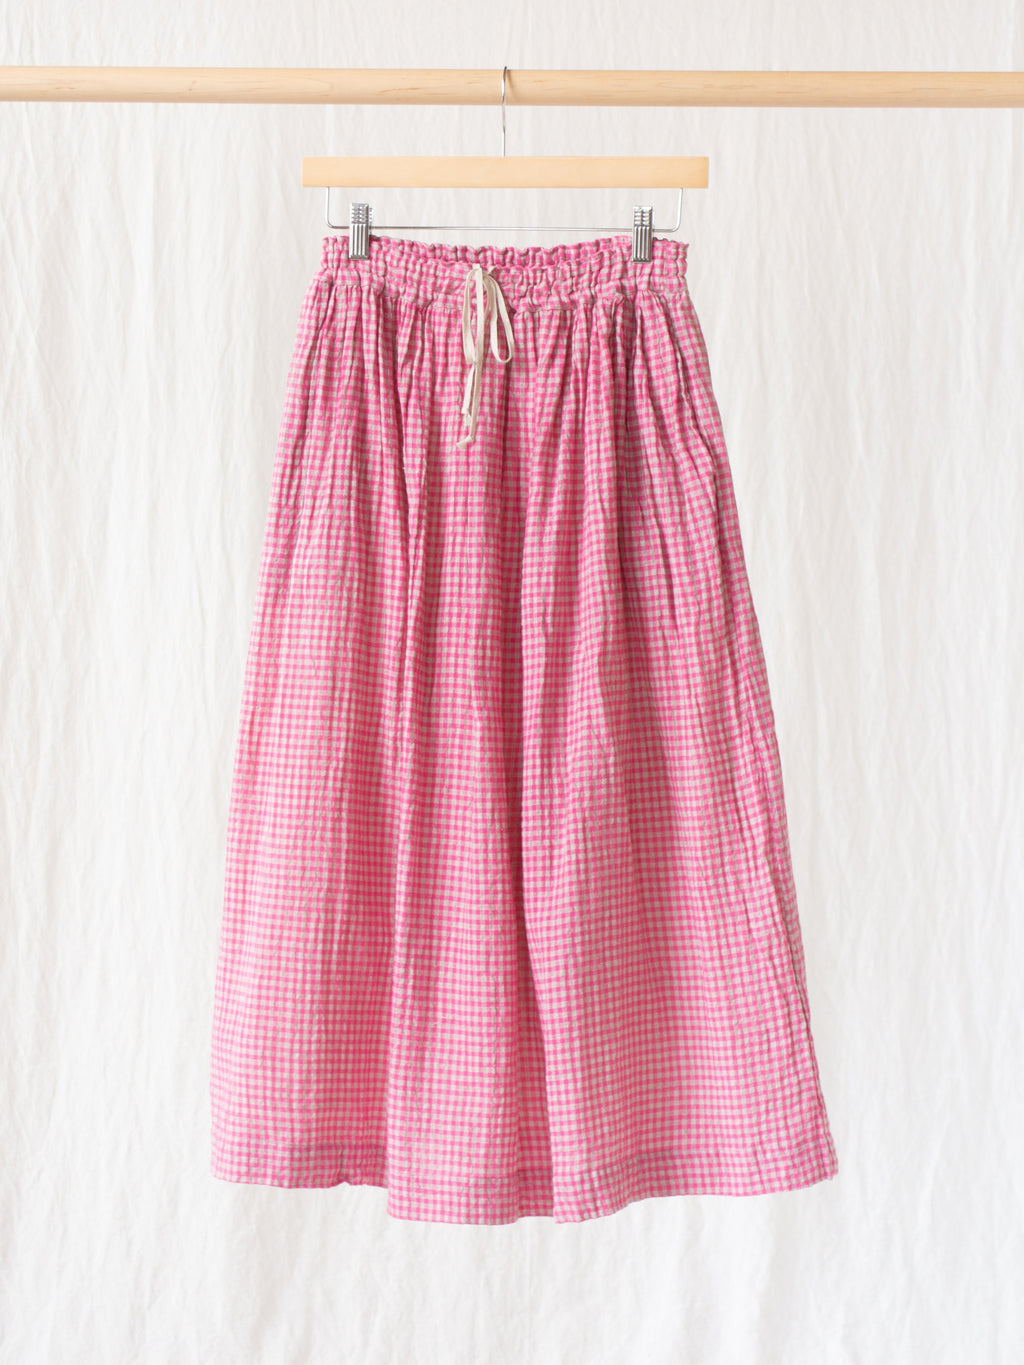 Namu Shop - Ichi Antiquites Co/Li Gingham Skirt - Pink